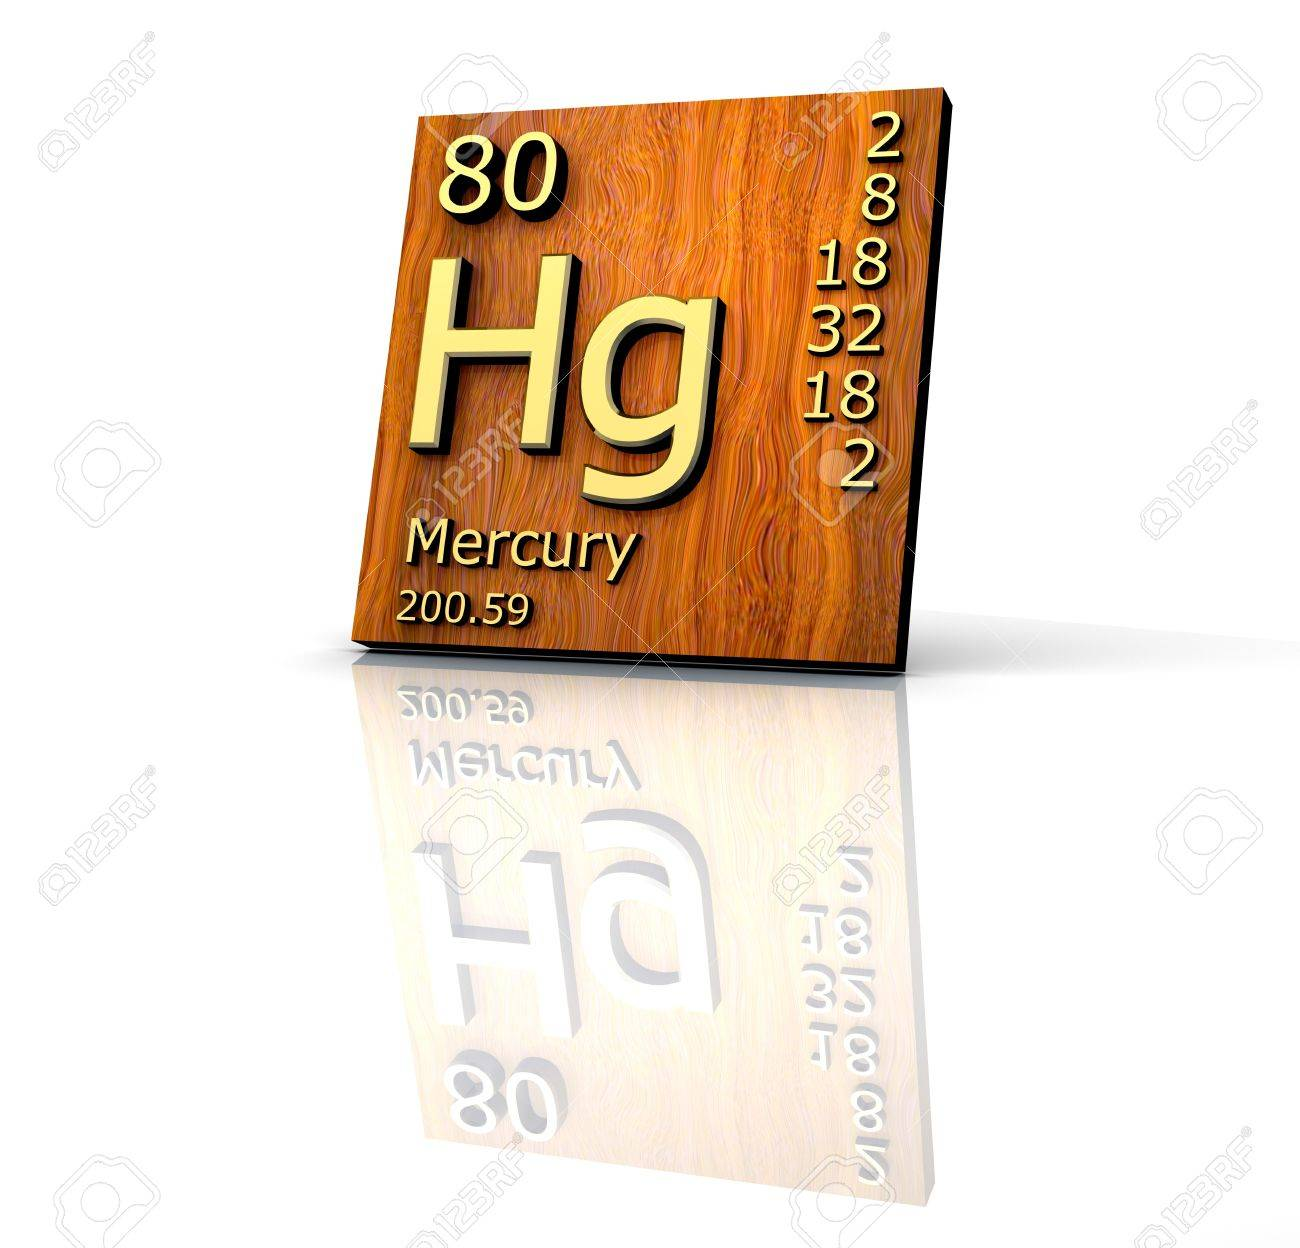 Periodic table symbol for mercury image collections periodic symbol for mercury on periodic table image collections periodic mercury periodic table symbol images periodic table gamestrikefo Images